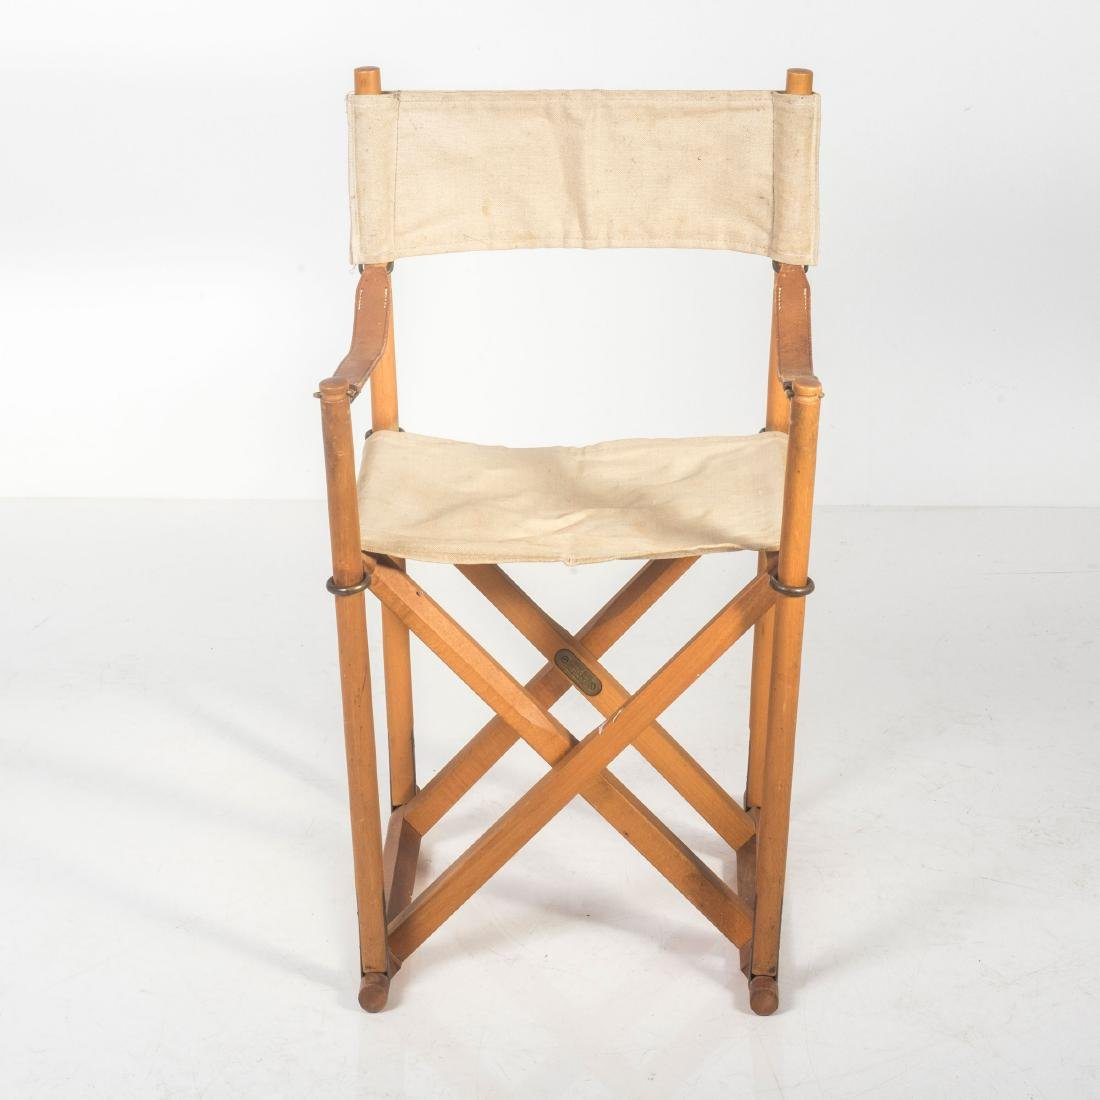 'MK16' child's folding chair, 1932 - 3